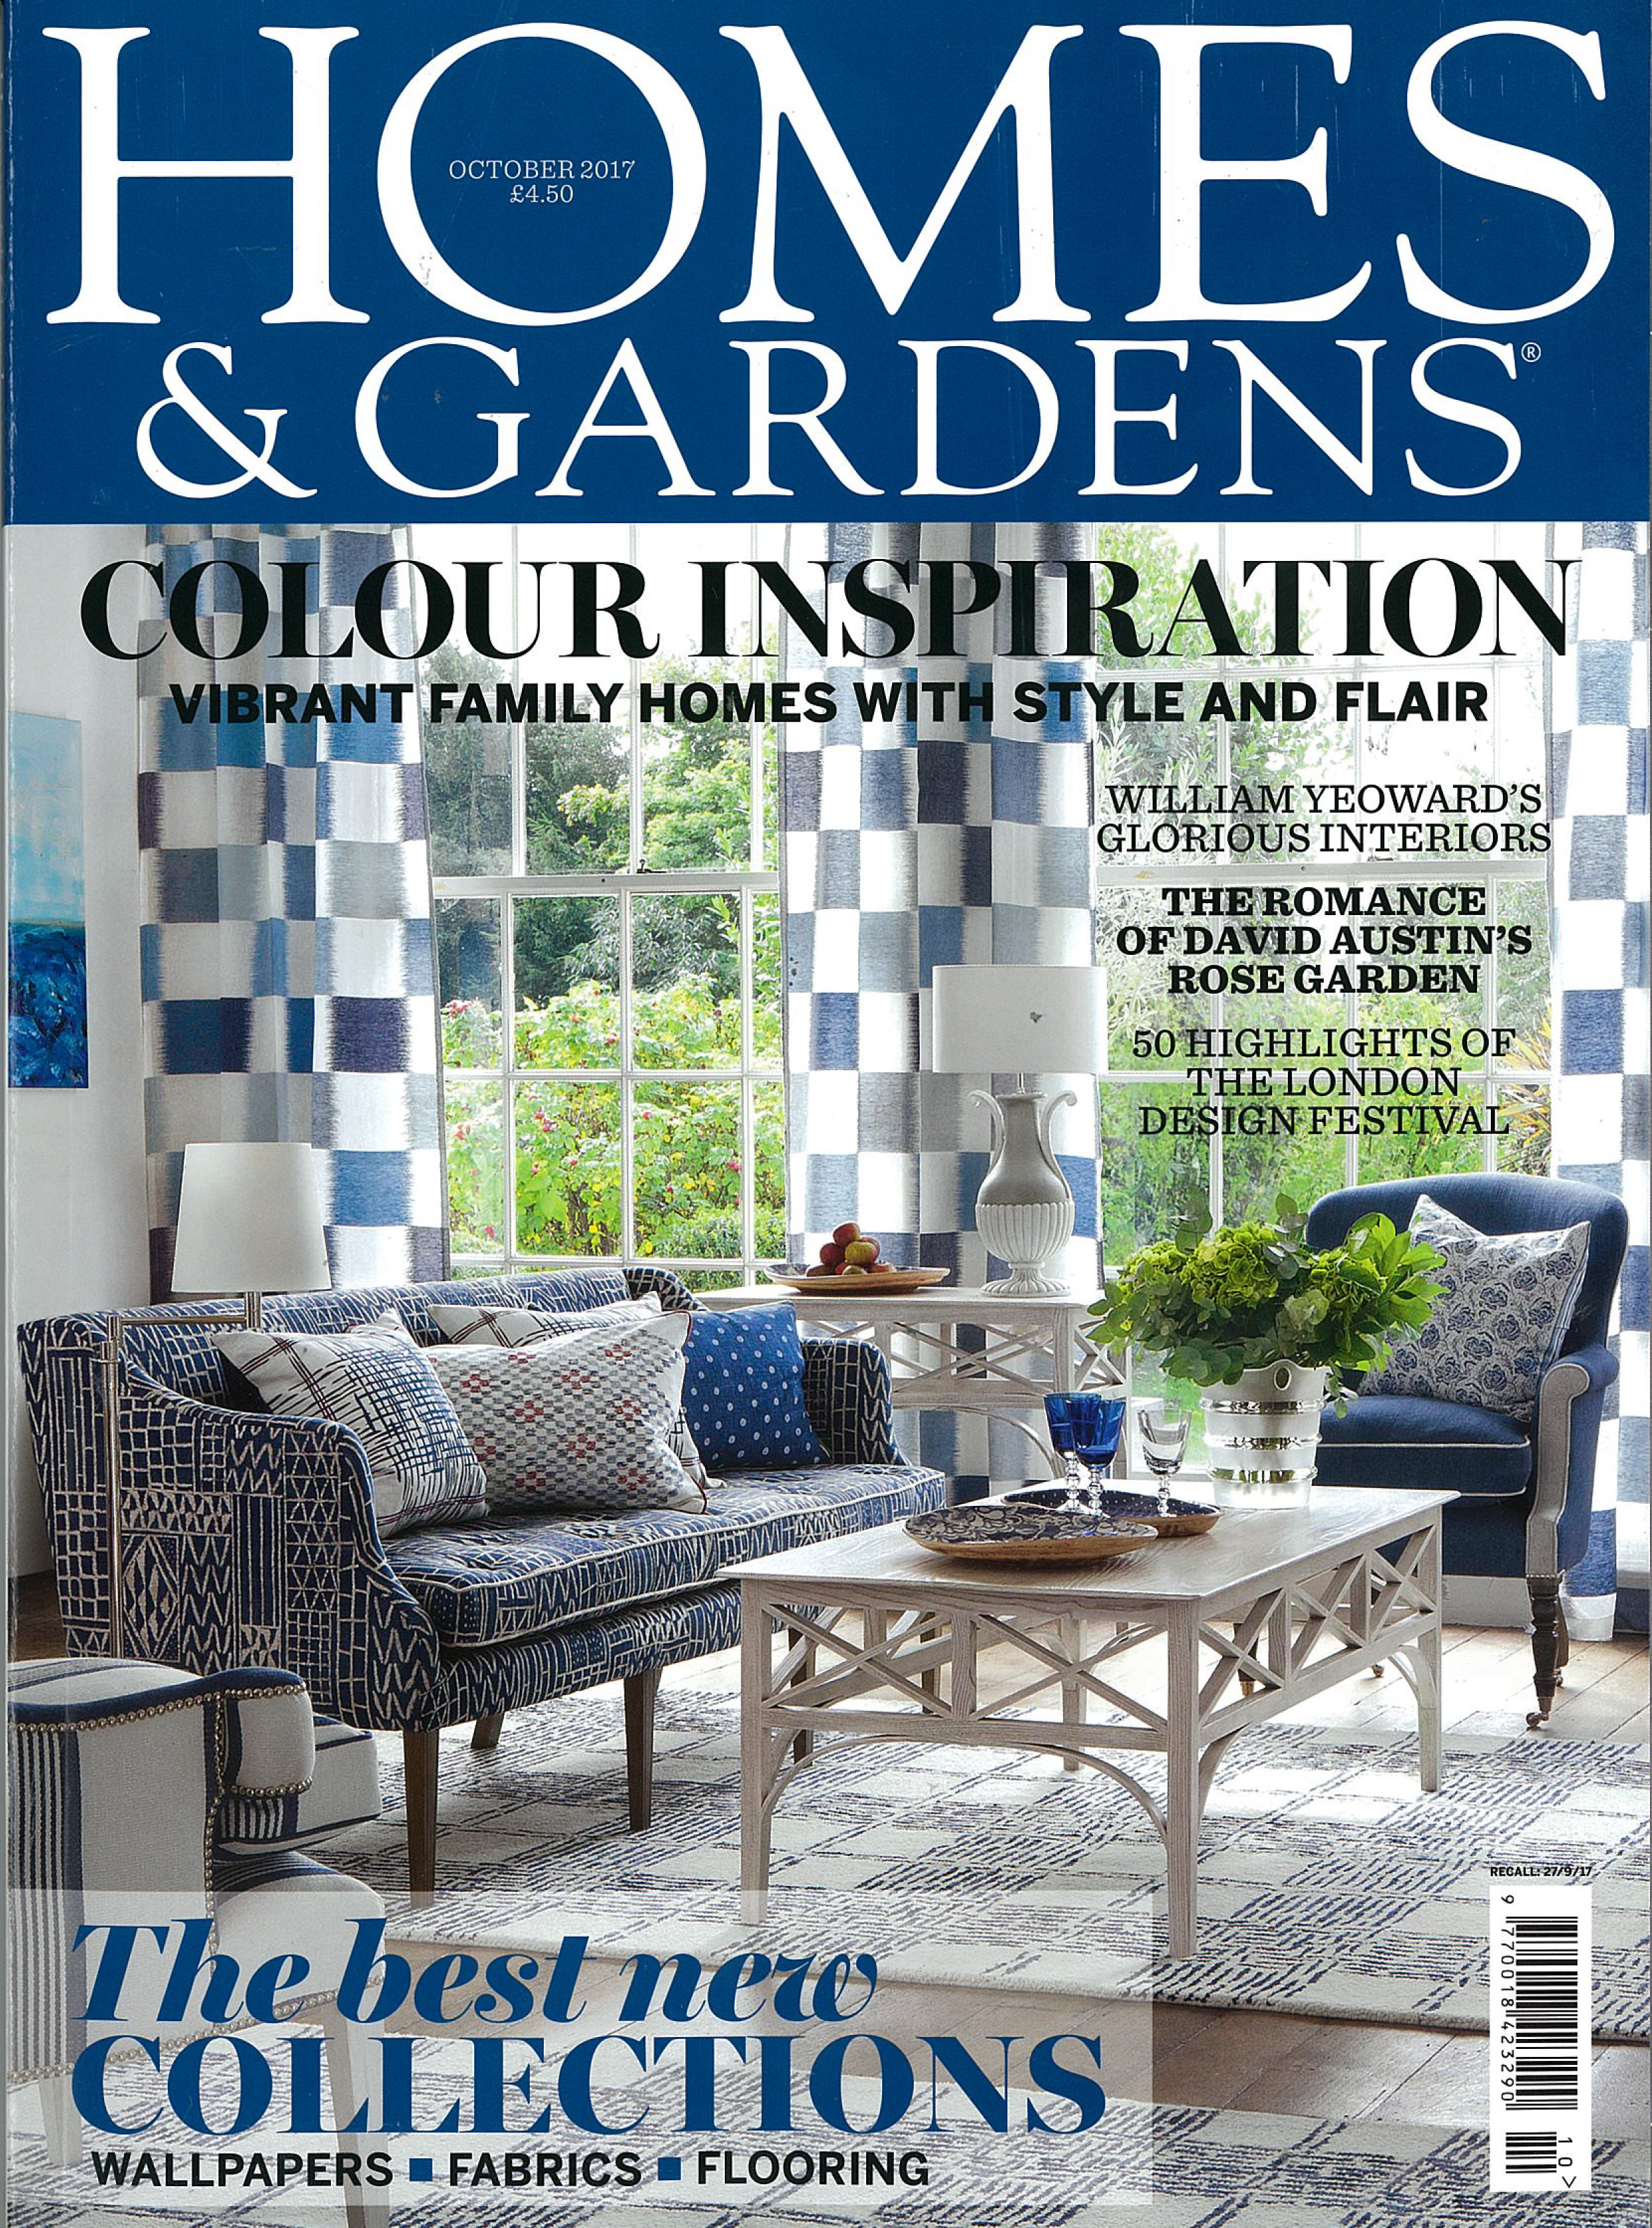 IN THE PRESS – HOMES & GARDENS OCTOBER 2017